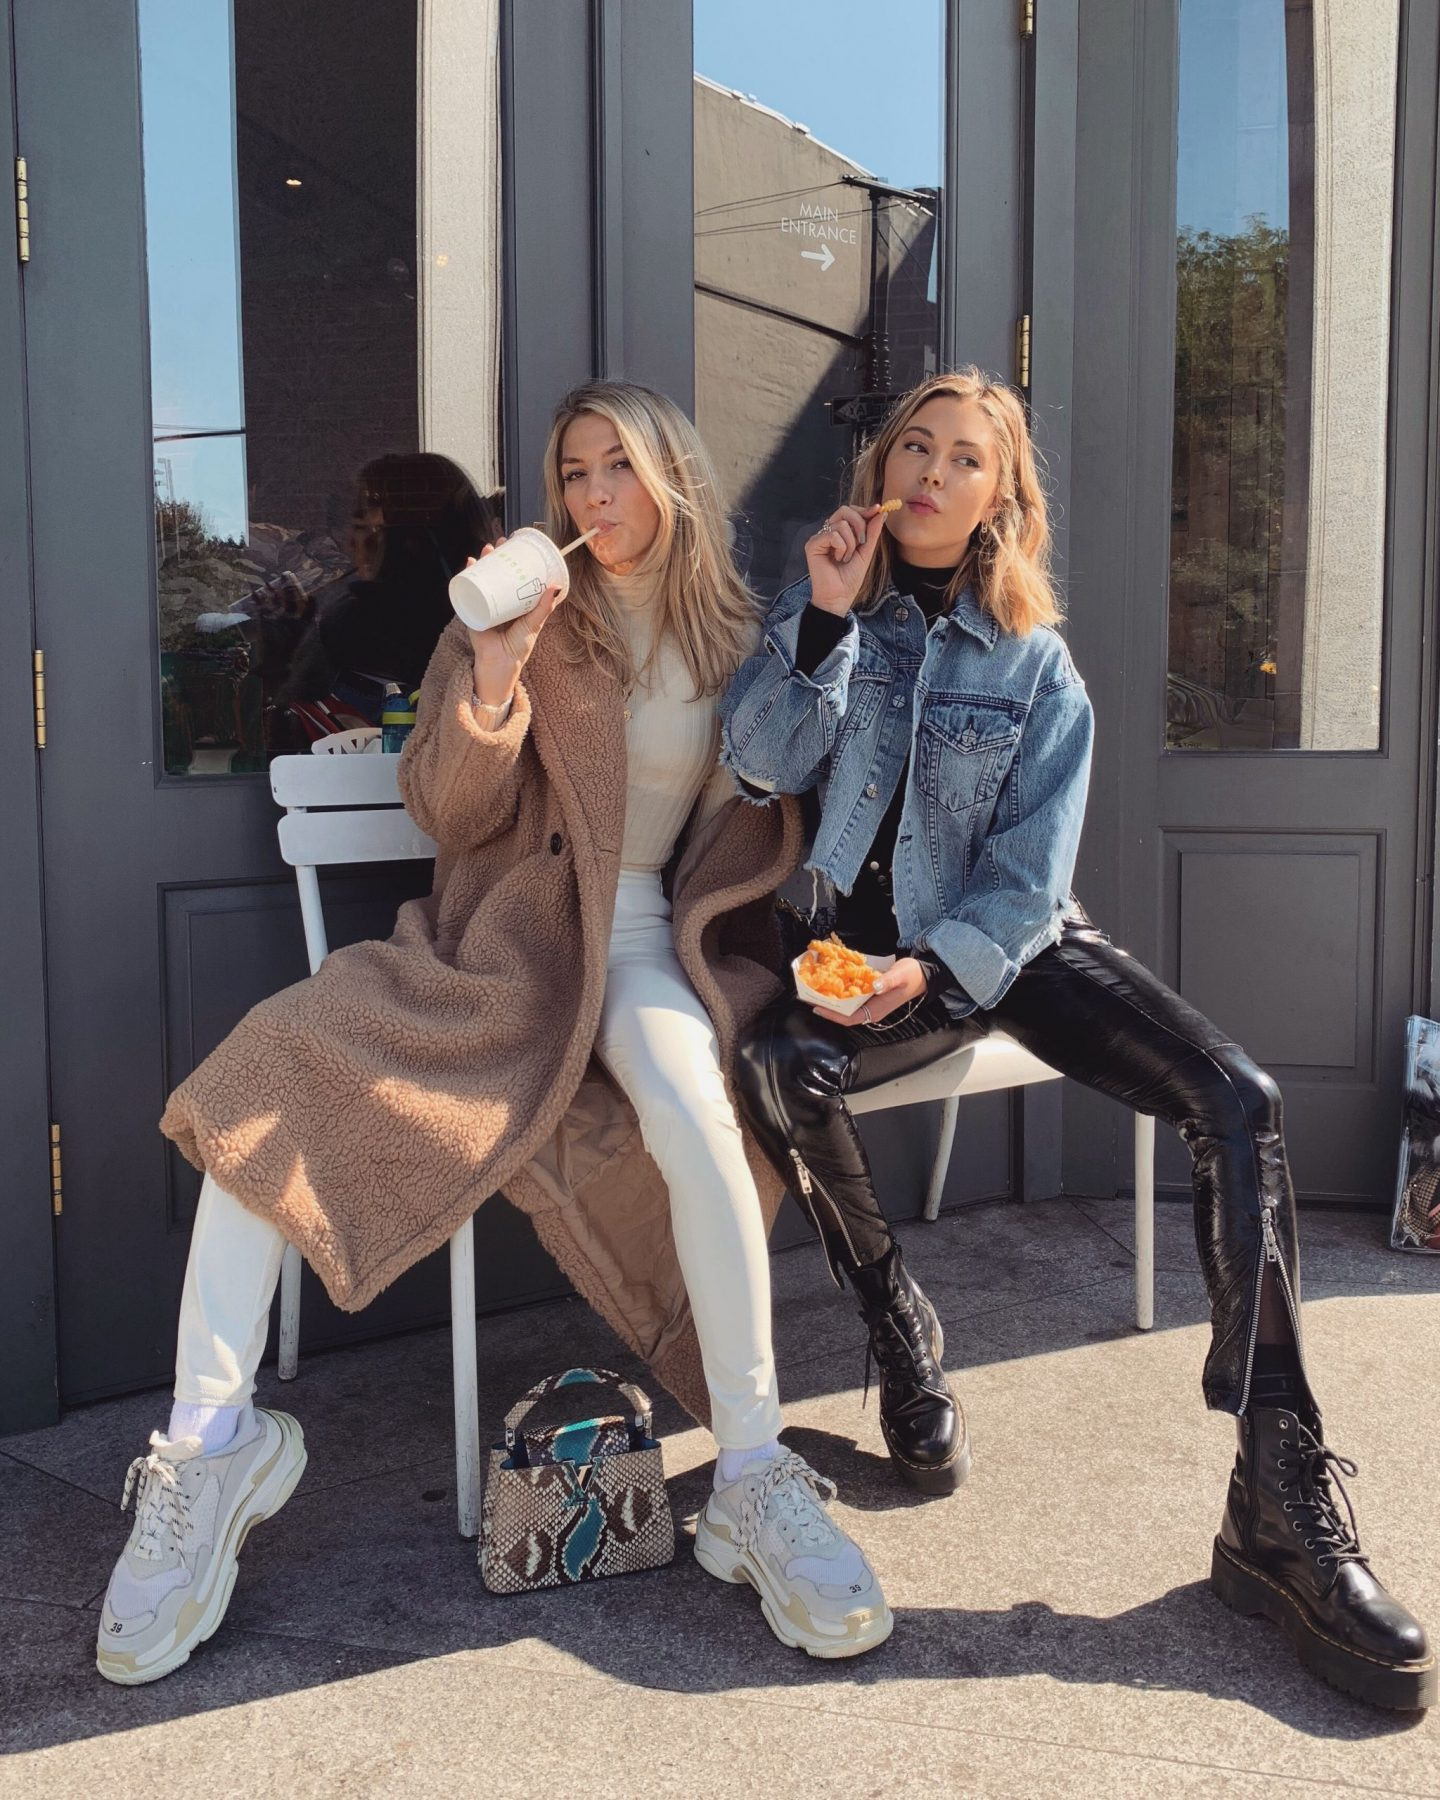 Cassandra DiMicco, Cass DiMicco, Dressed For Dreams, NYC, New York City, New York, Street Style NYC, Street Style 2018, NYC Street Style, NYC Outfit Inspo Street Style Outfits, 2018 Trends, Summer Style, Summer Outfit Inspo, NYC Fashion Blogger, NYC Fashion Blogger, NYC to do list, NYC to do, NYC bucket list, NYC Instagram Spots, 2018 trends, Brooklyn bridge, LPA, storets, privacy please, Louis Vuitton, balenciaga, teddy coat, Louis Vuitton python, balenciaga triple s sneakers, triple s sneakers